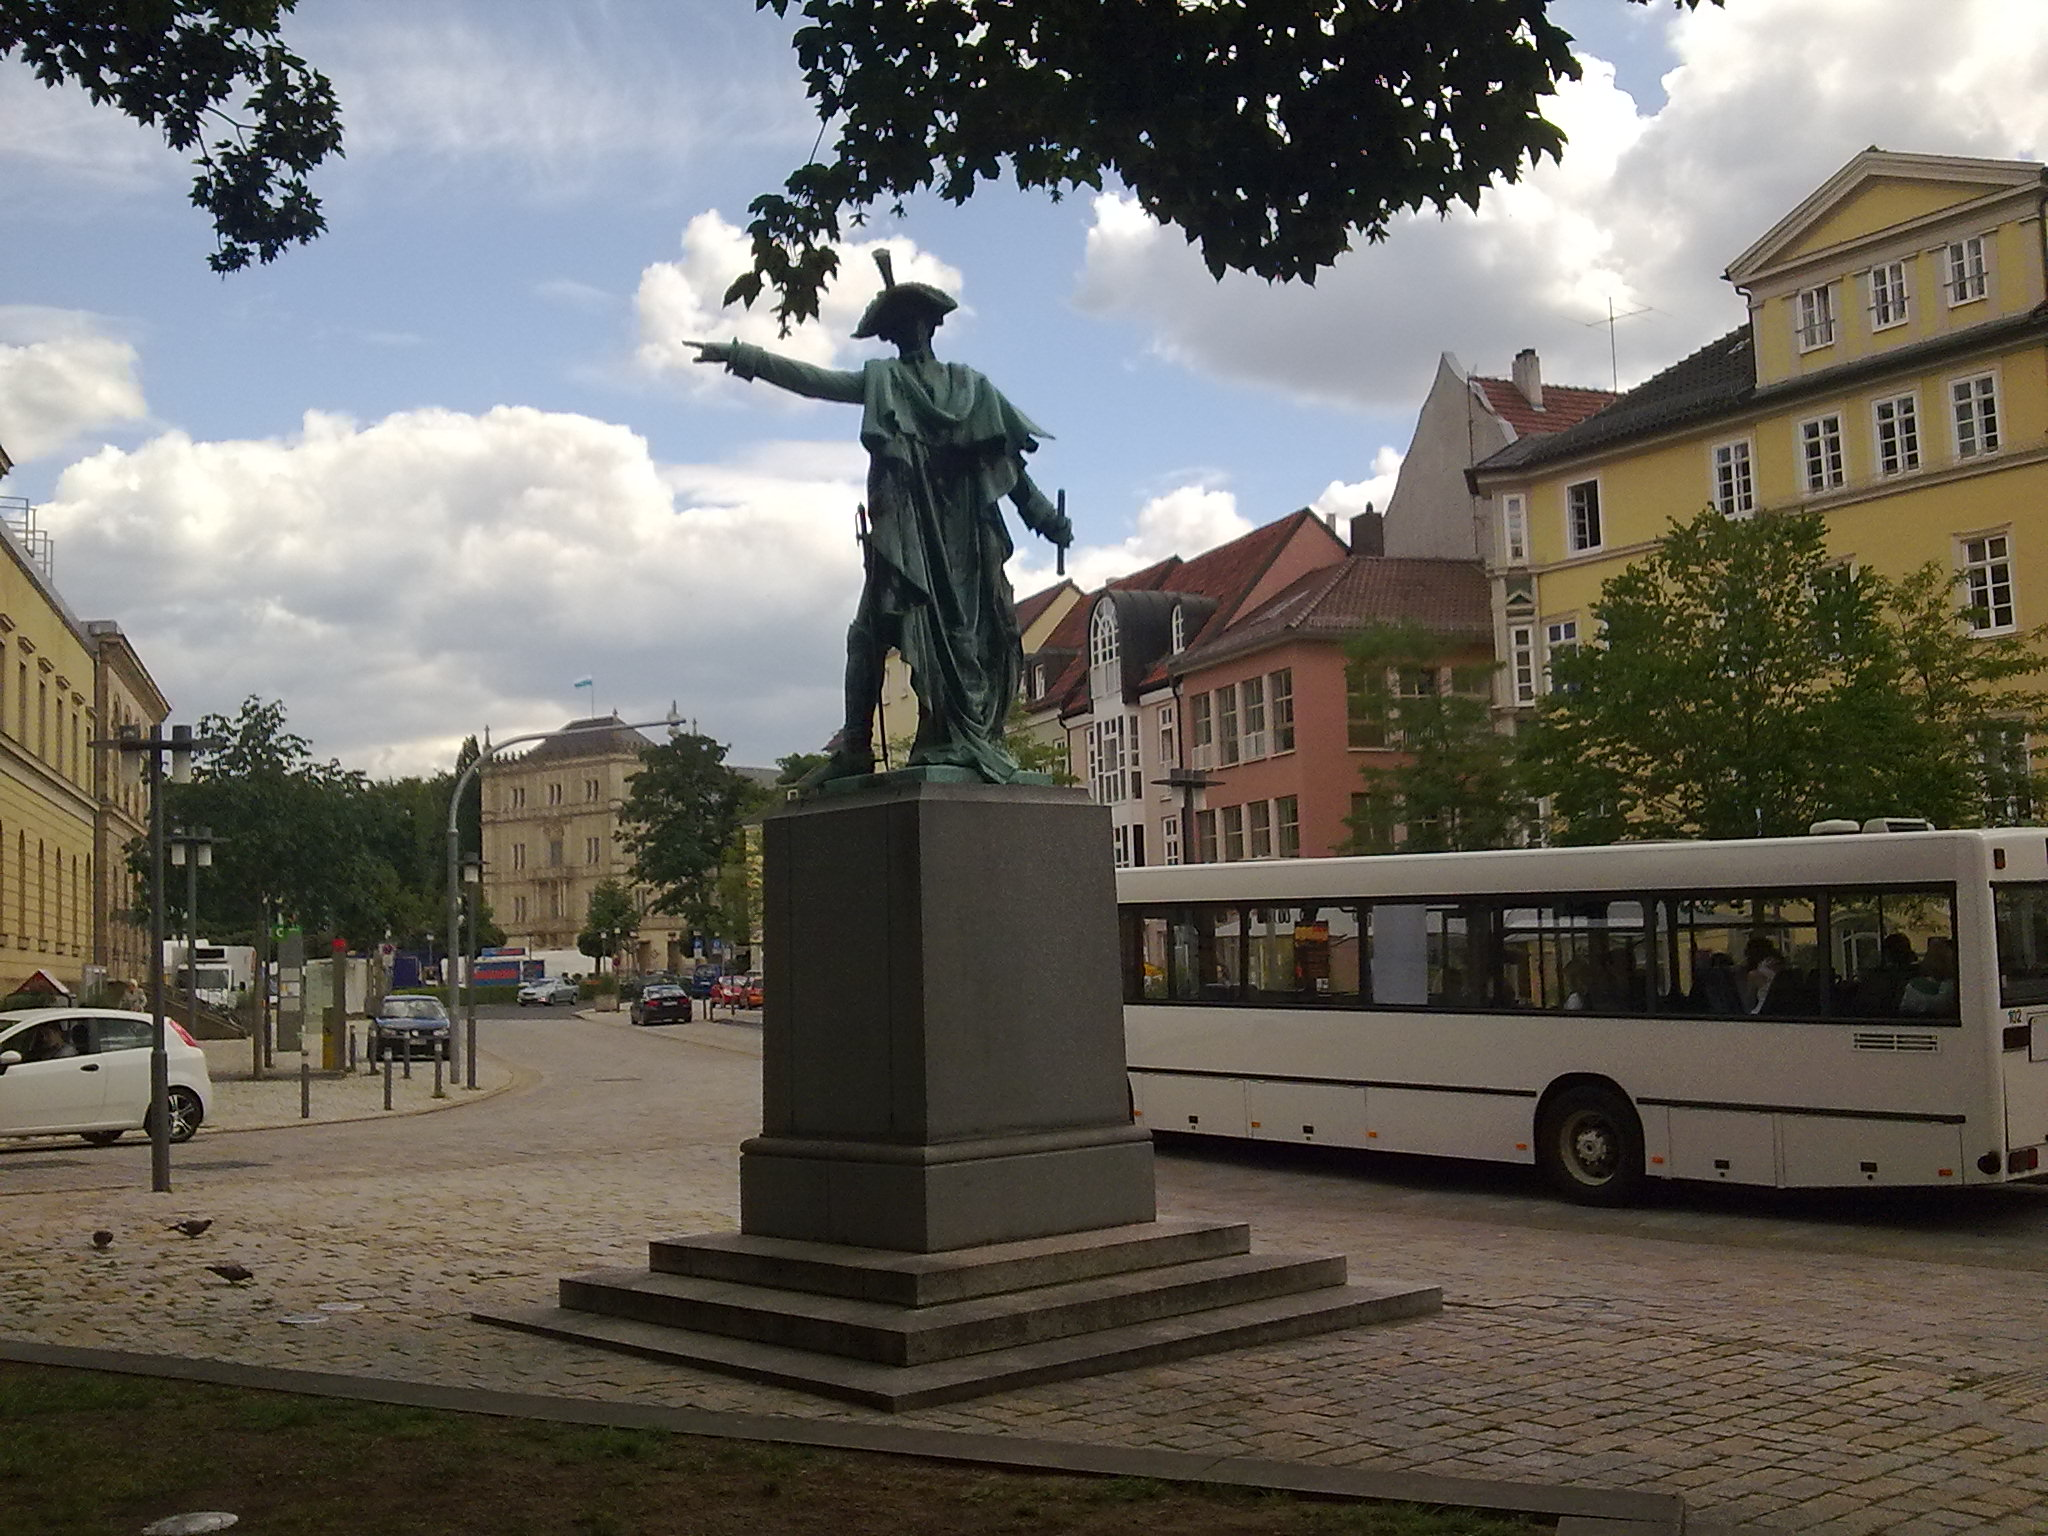 Coburg Germany  City pictures : Coburg, Germany 2 by peppy heppy on DeviantArt